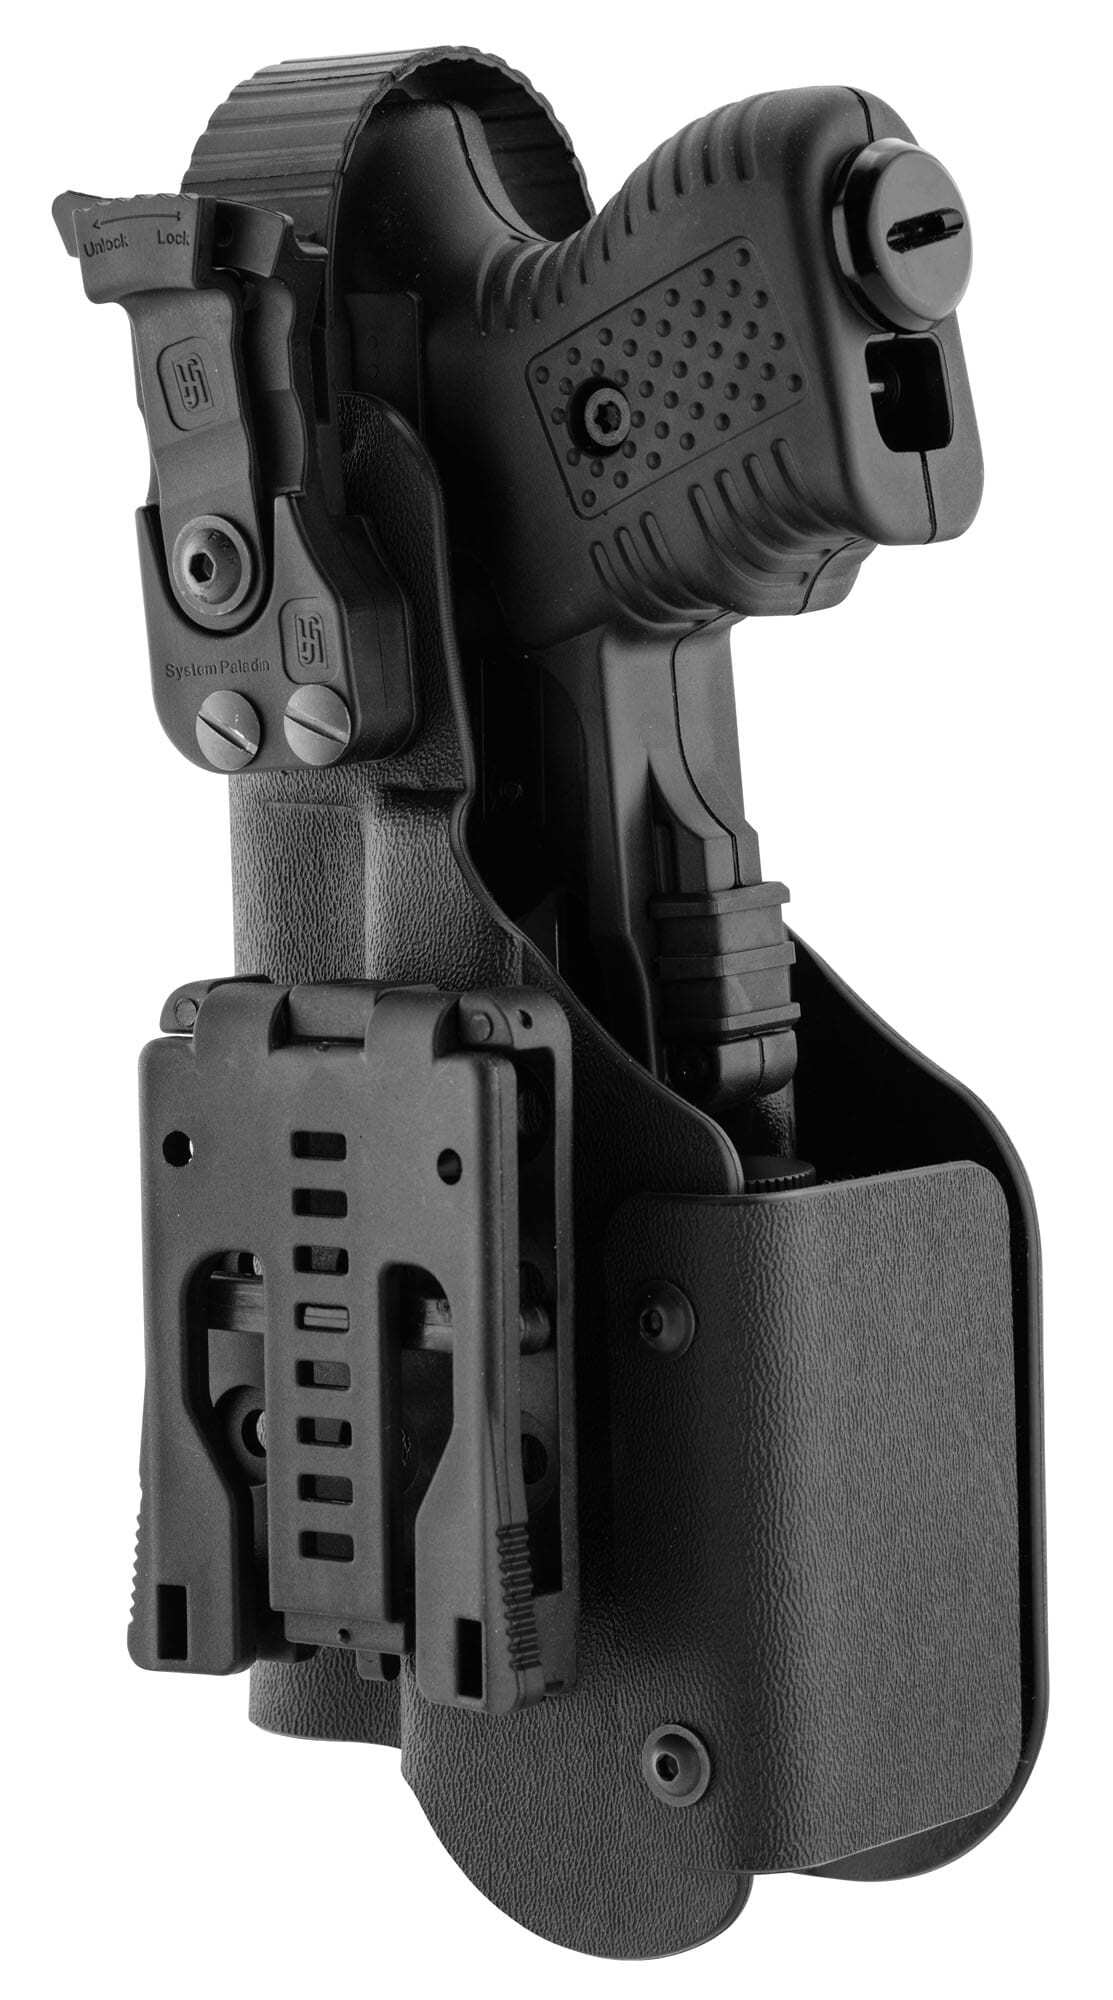 JPX390-2-Holster pour JPX - Kydex Paladin II avec lampe tactique - JPX400